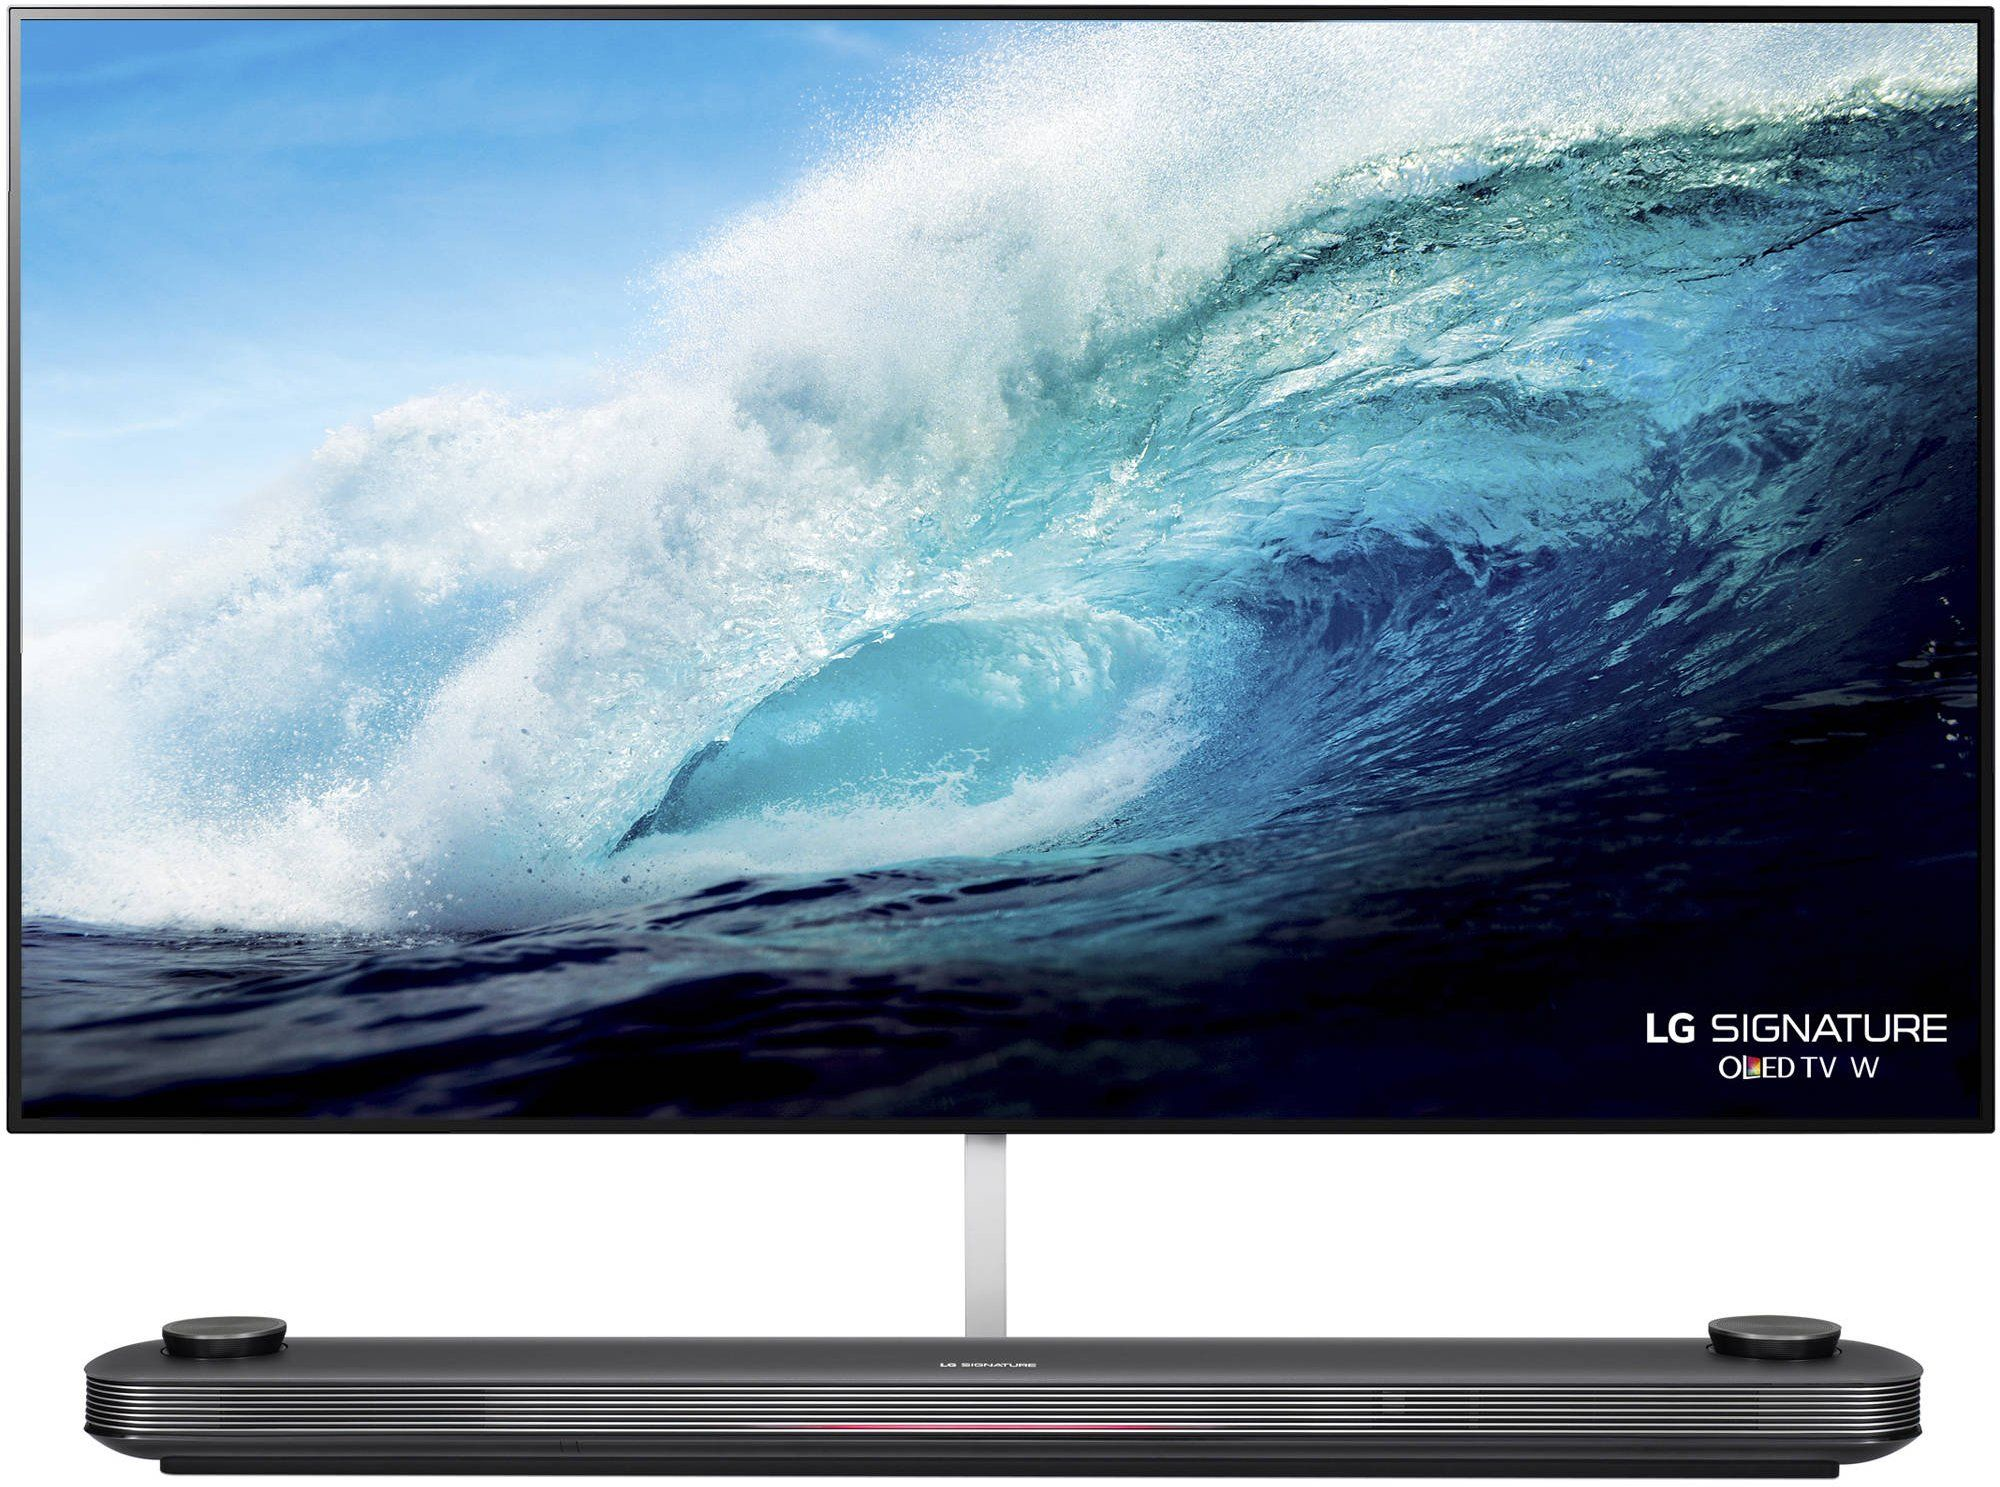 LG will show off biggestever 8K OLED screen at CES 8k